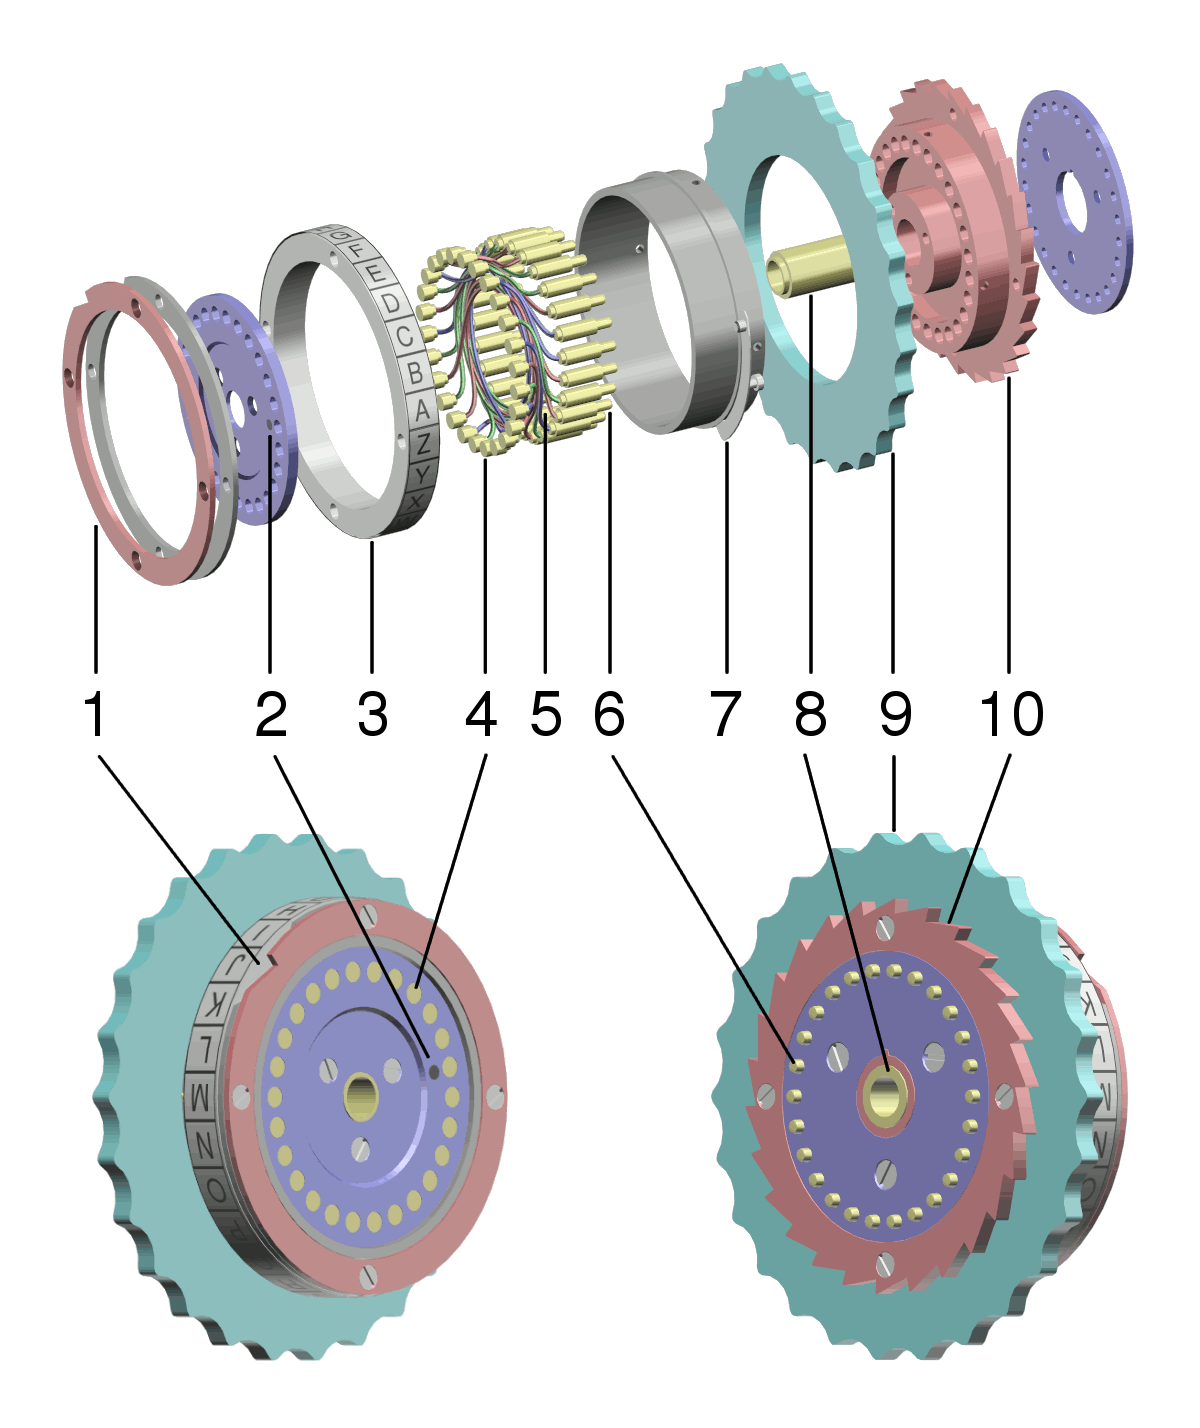 enigma rotor details enigma rotor exploded view png